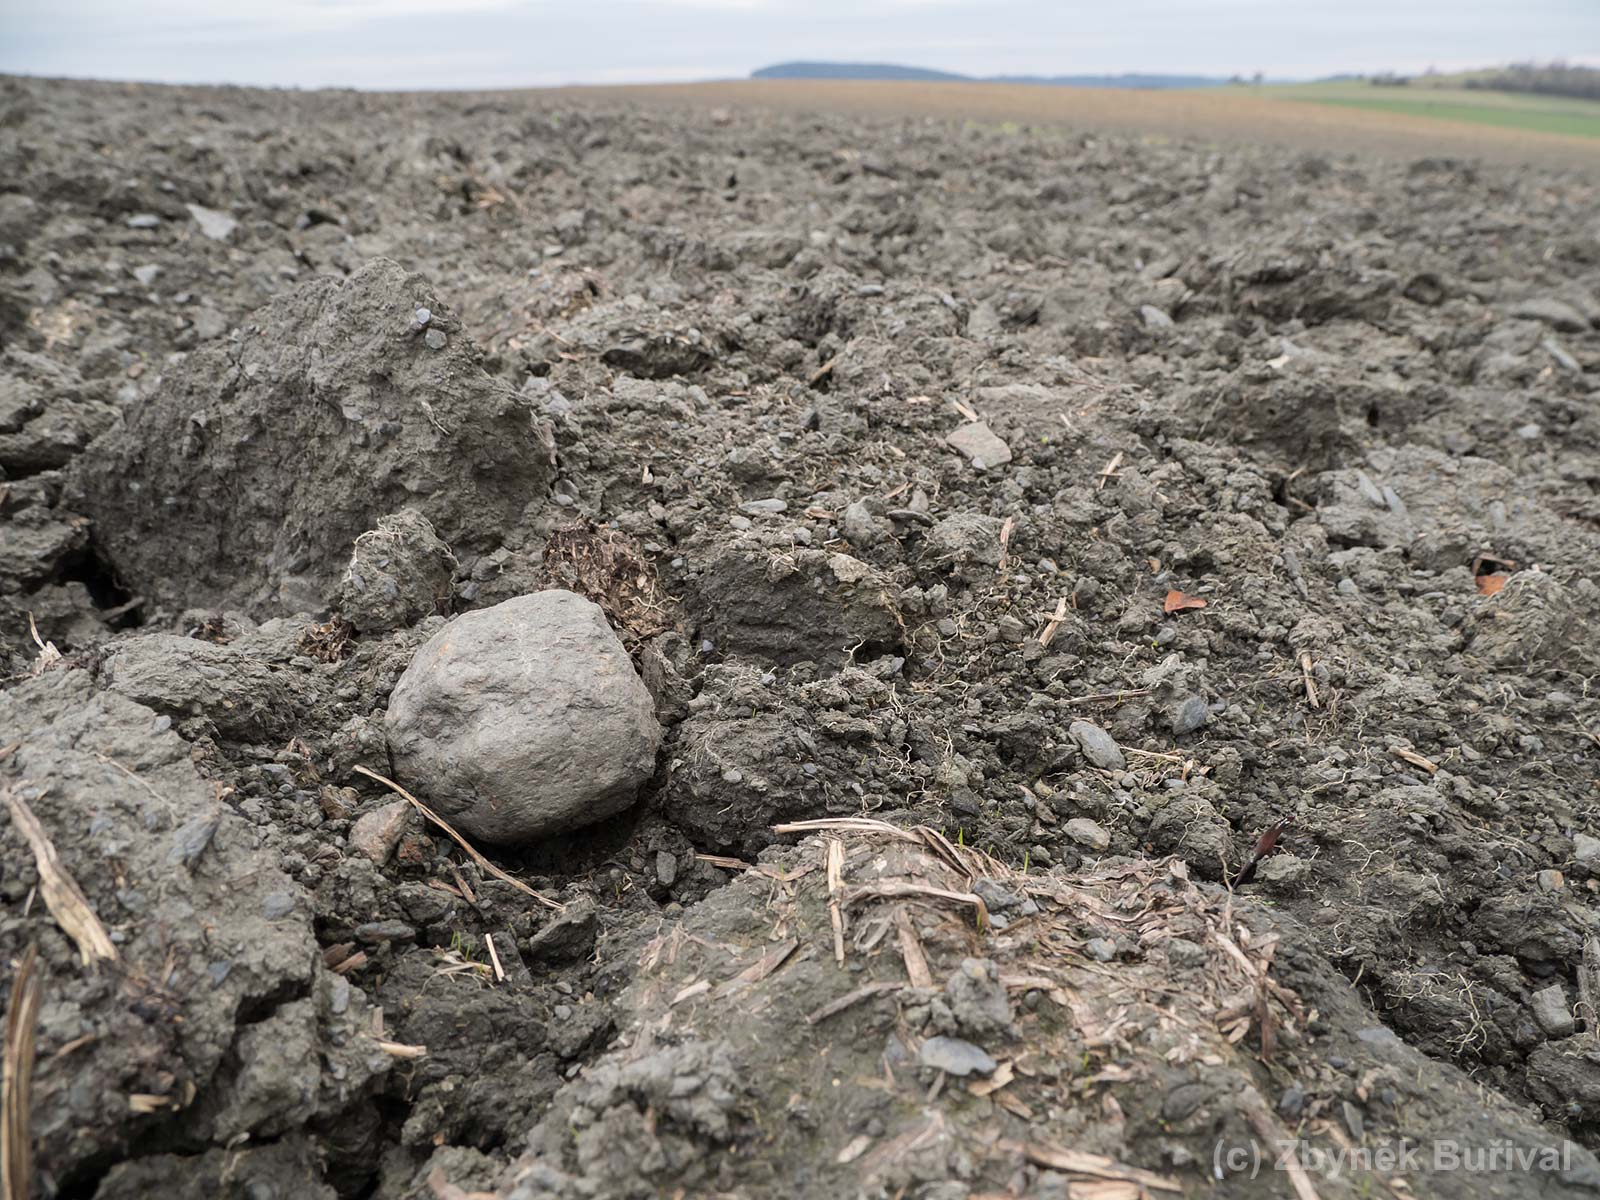 Big almandine garnet crystal on the ploughed field